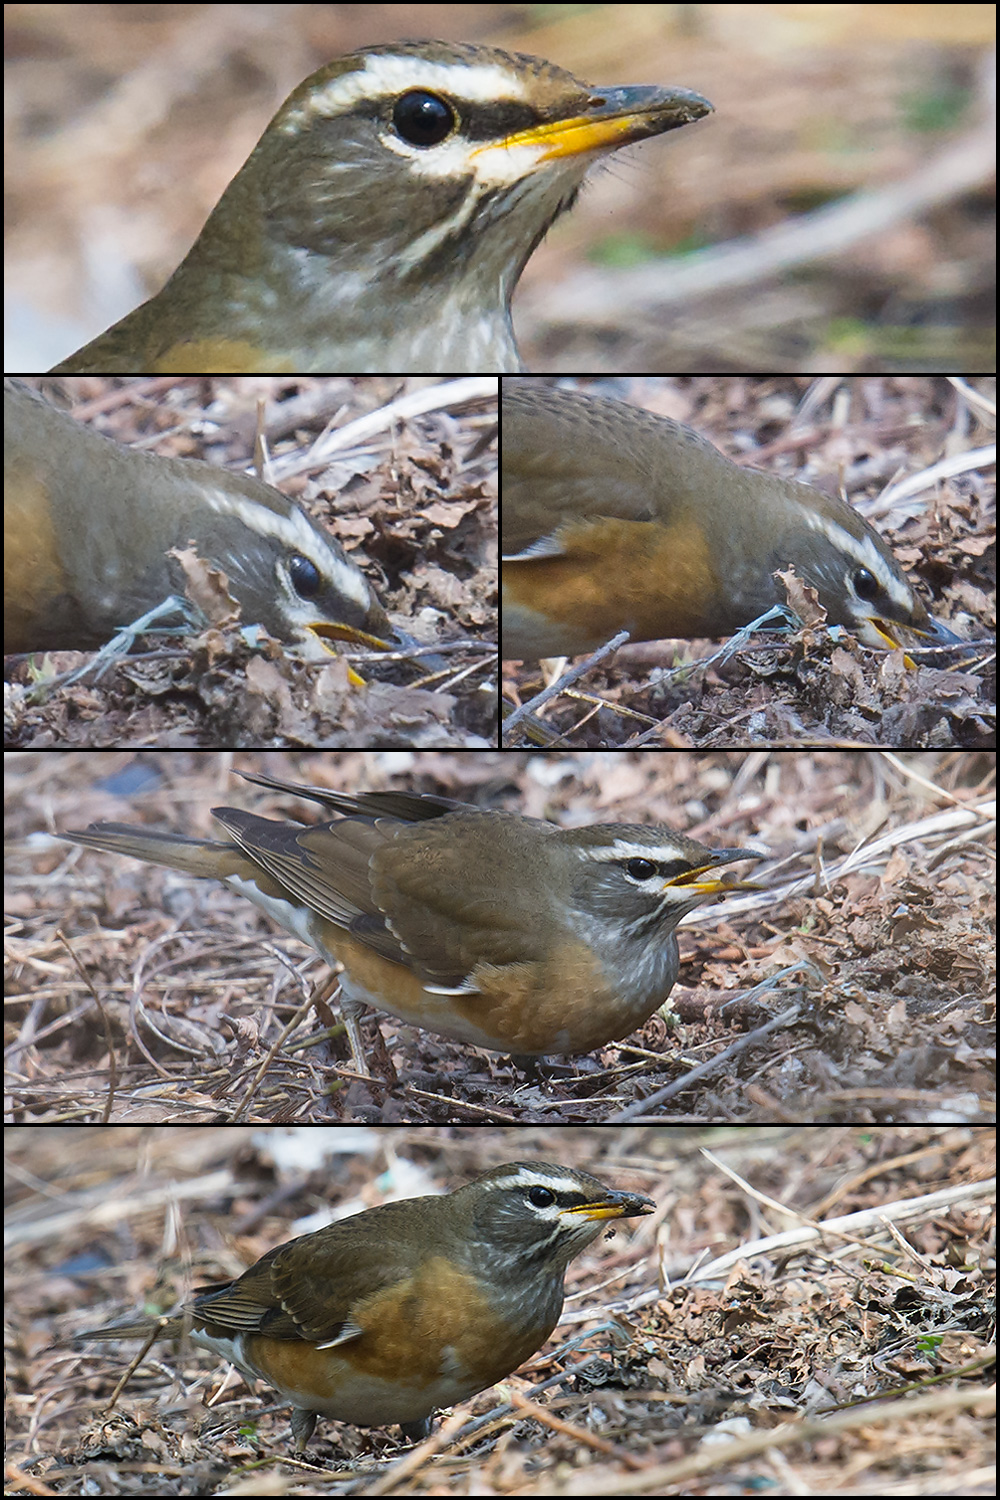 Eyebrowed Thrush feeding in Microforest 4, Nanhui, 3 Nov. 2016.